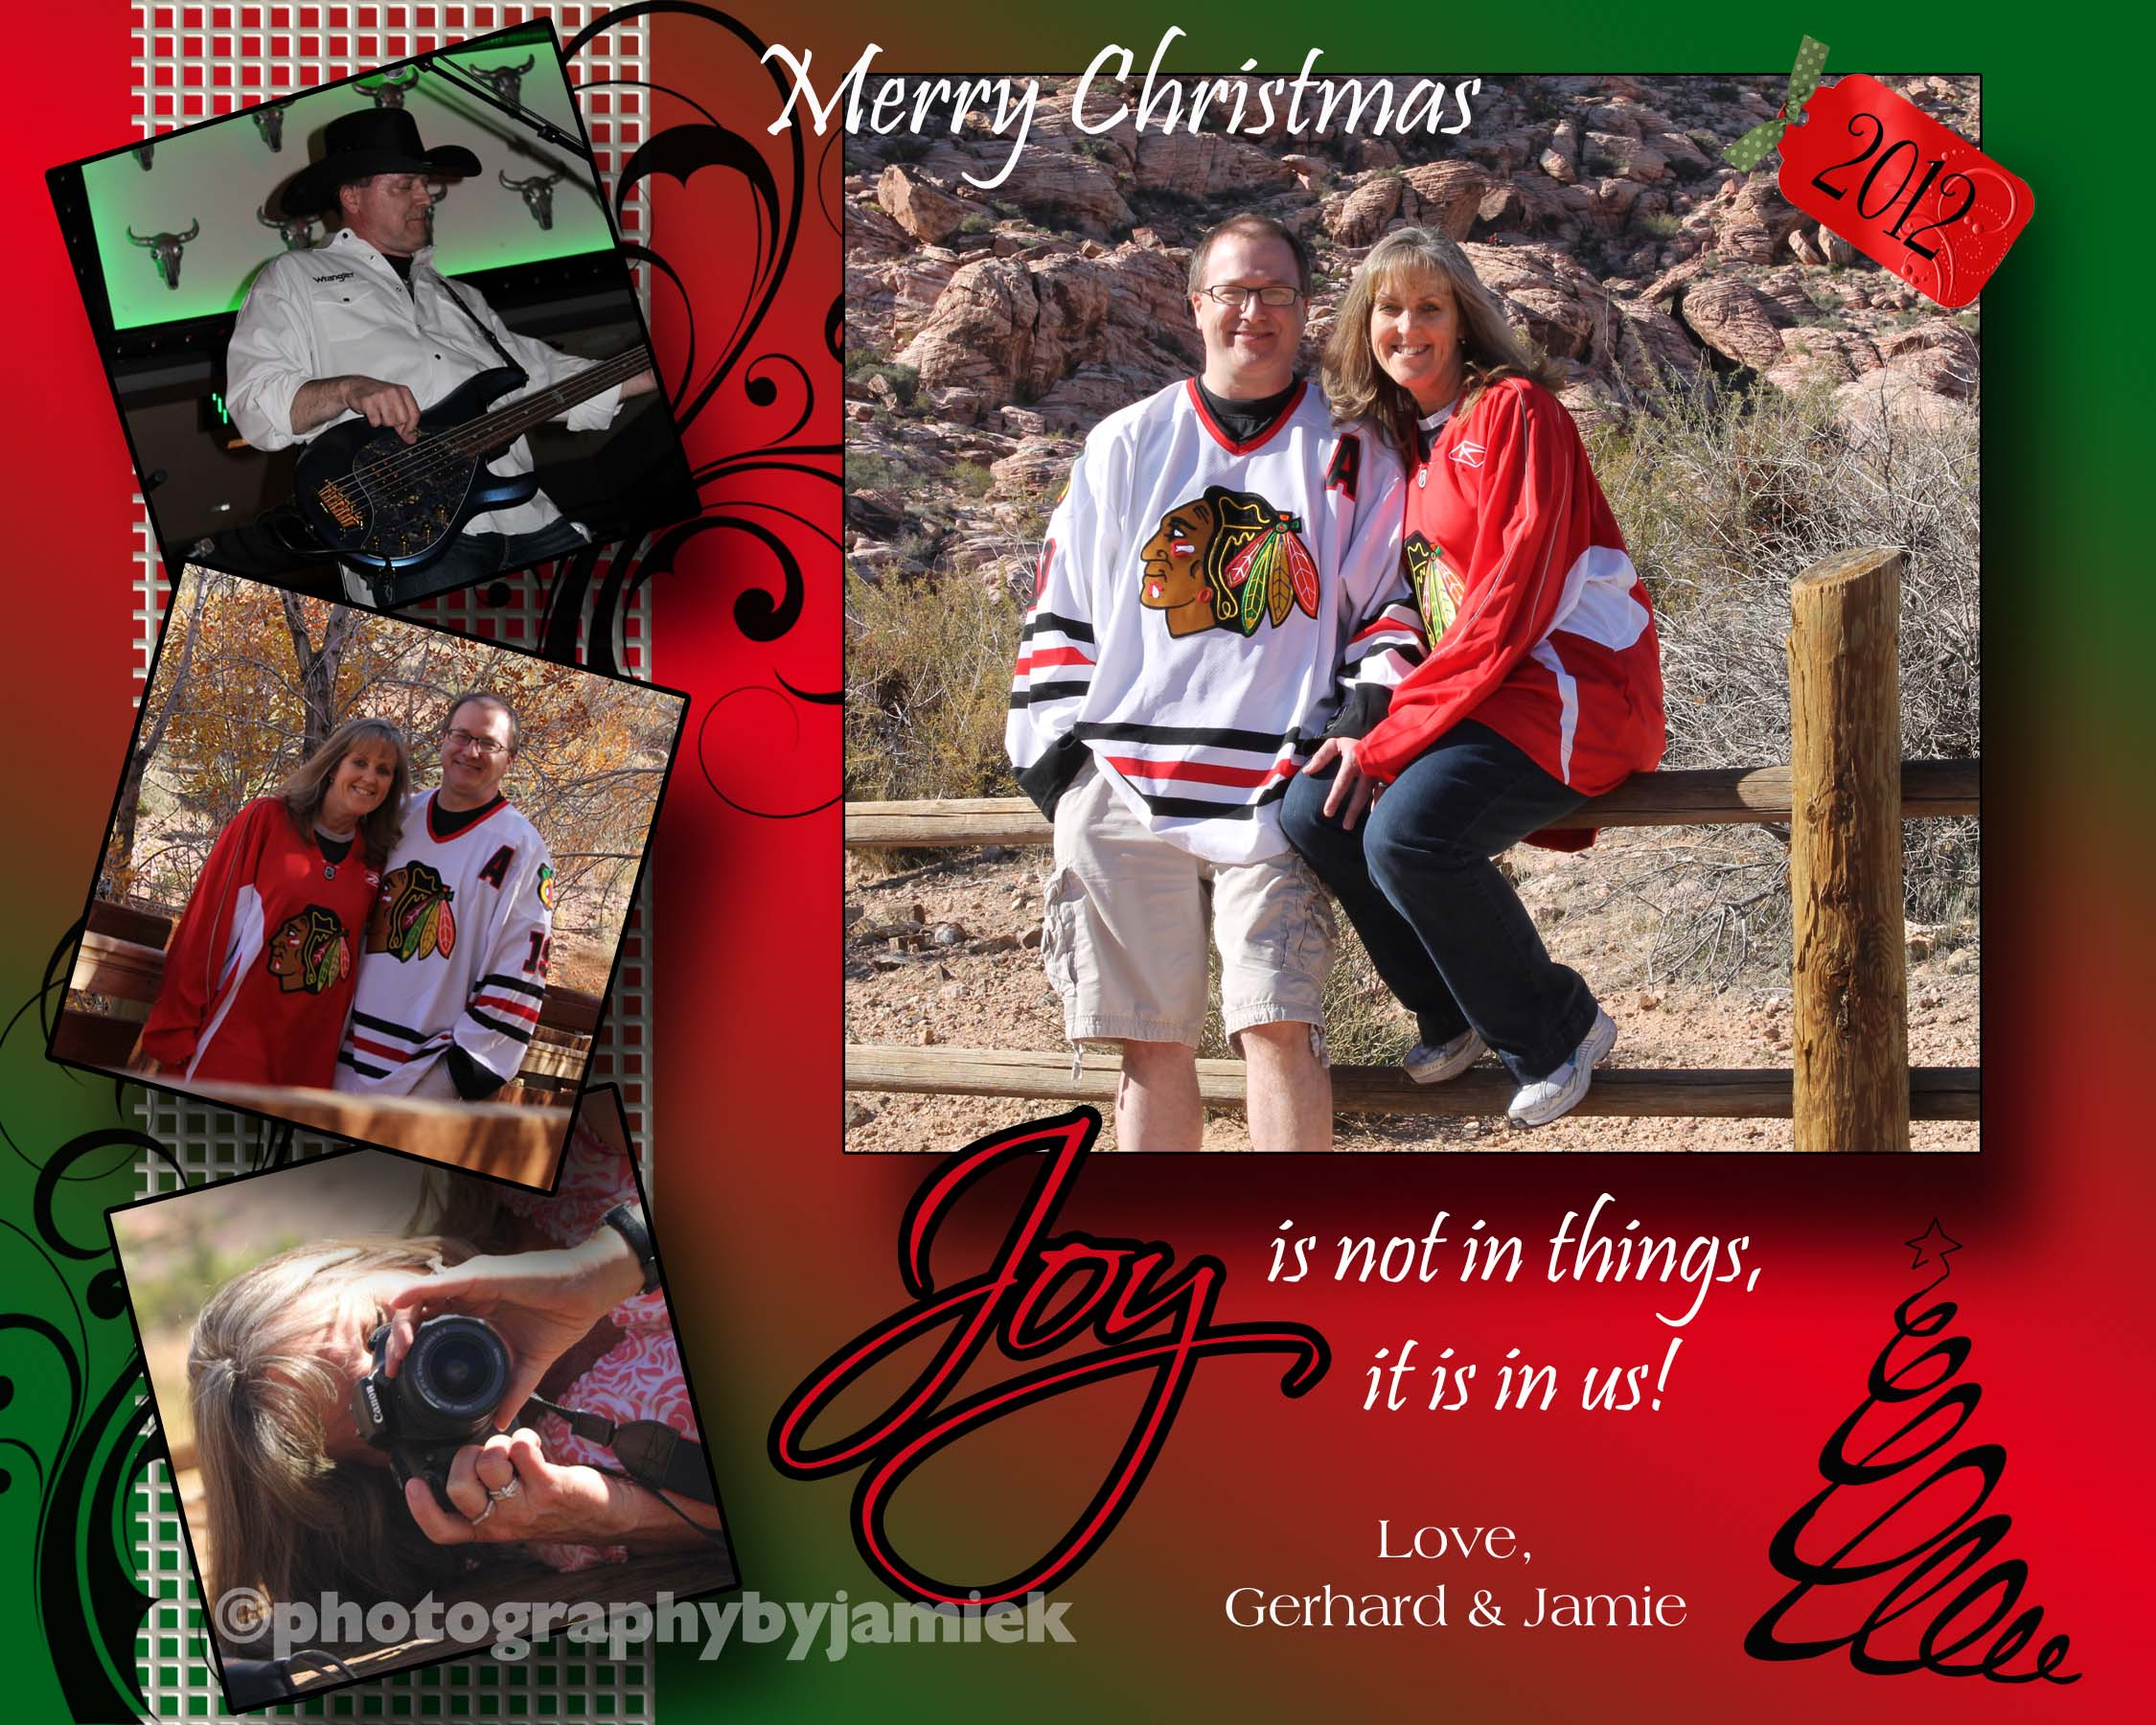 Christmas Card_edited-2 copy.jpg